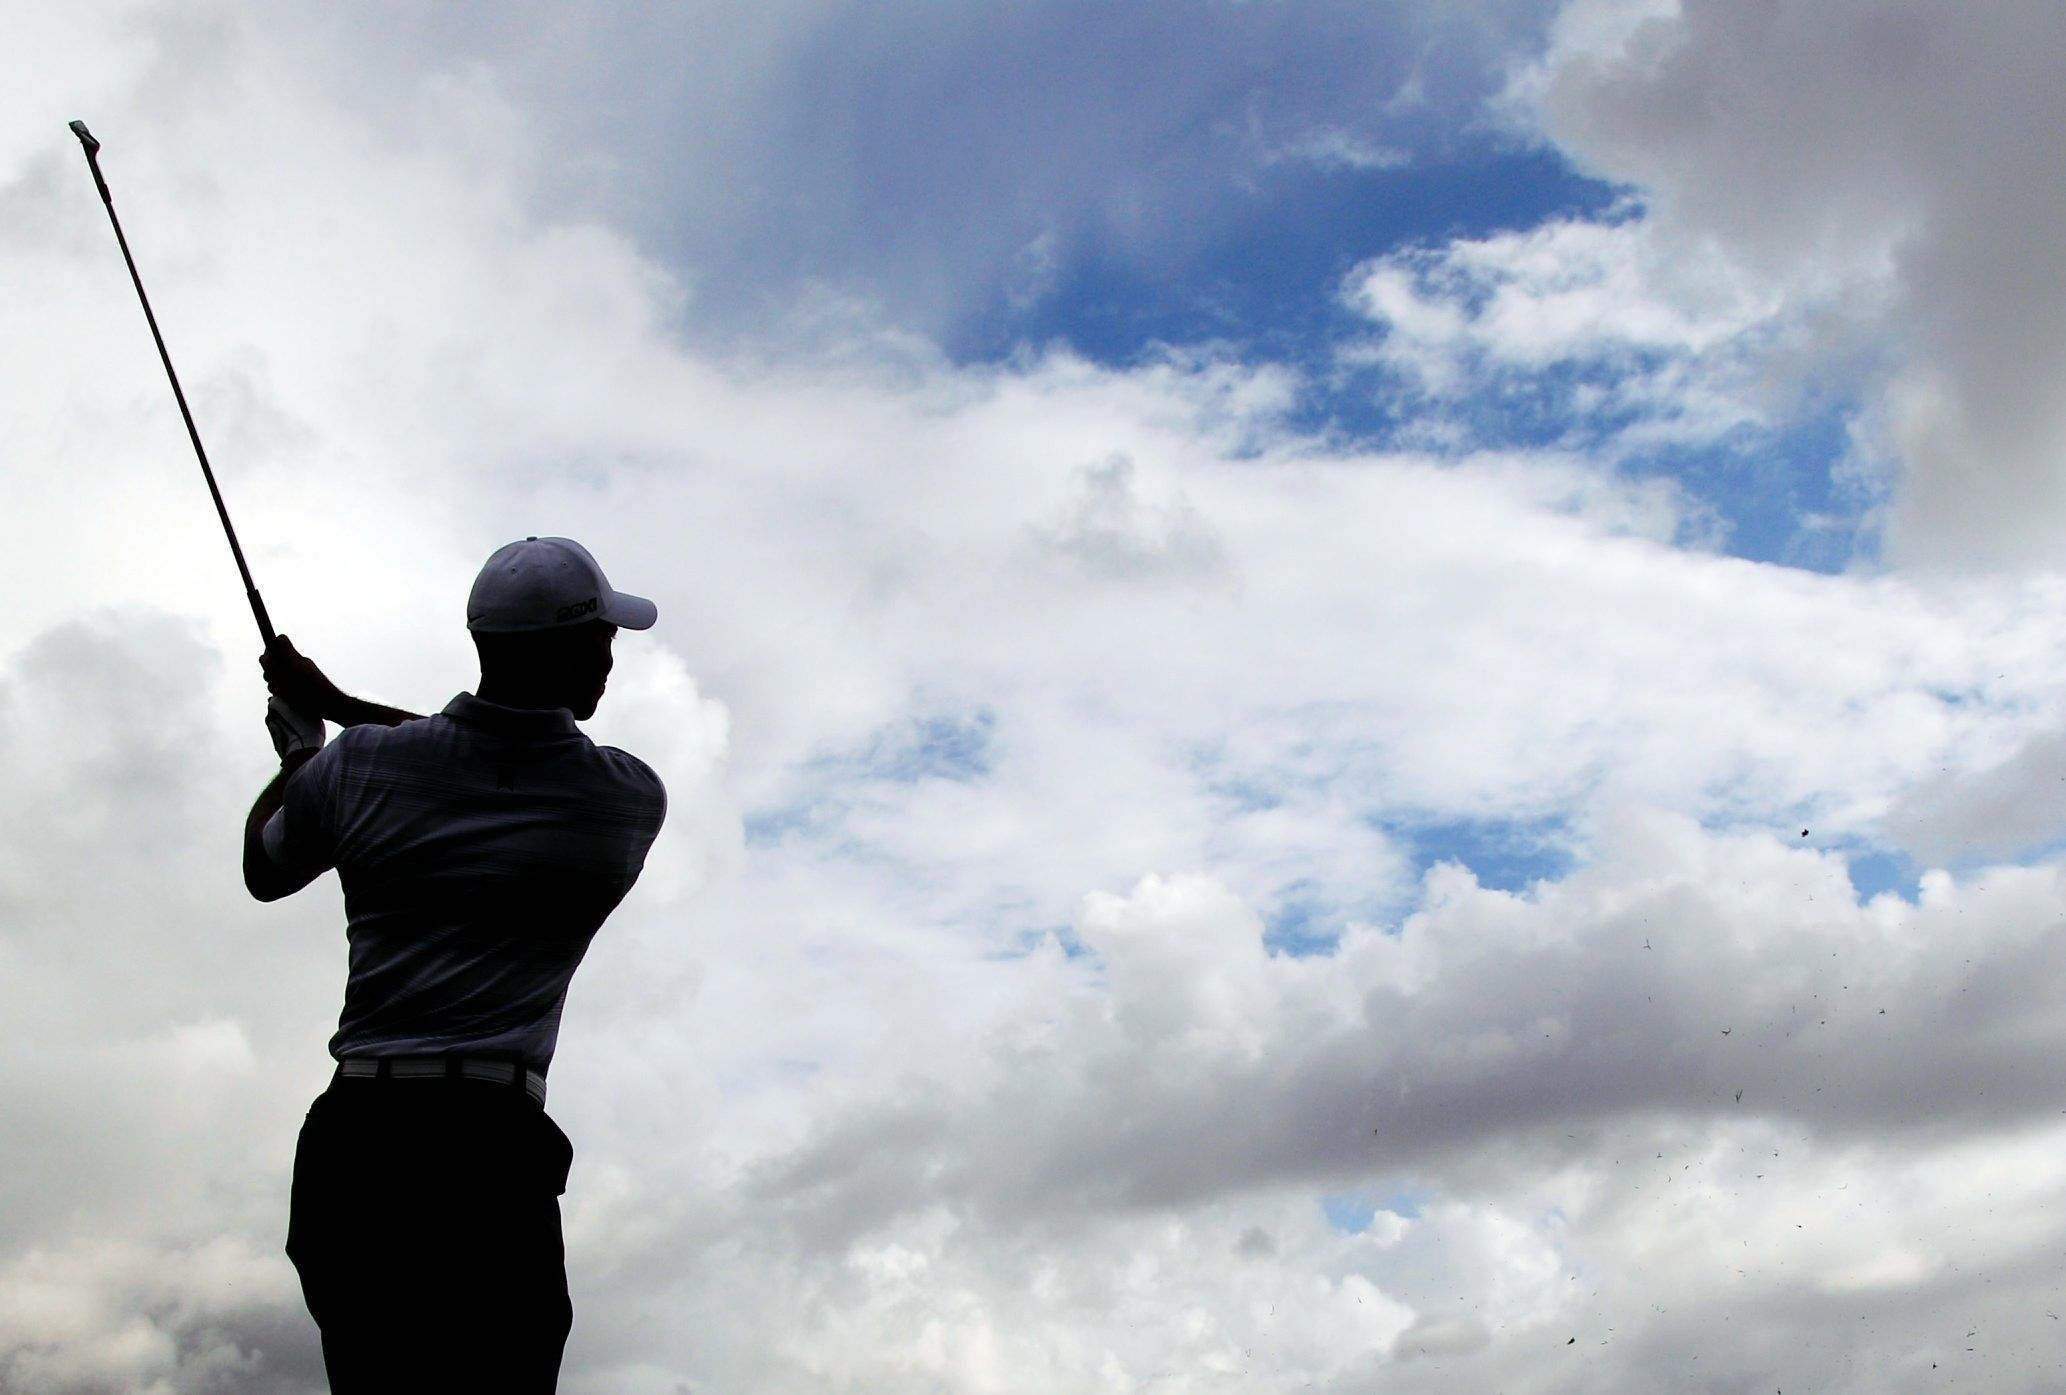 Sky the limit for new swing?